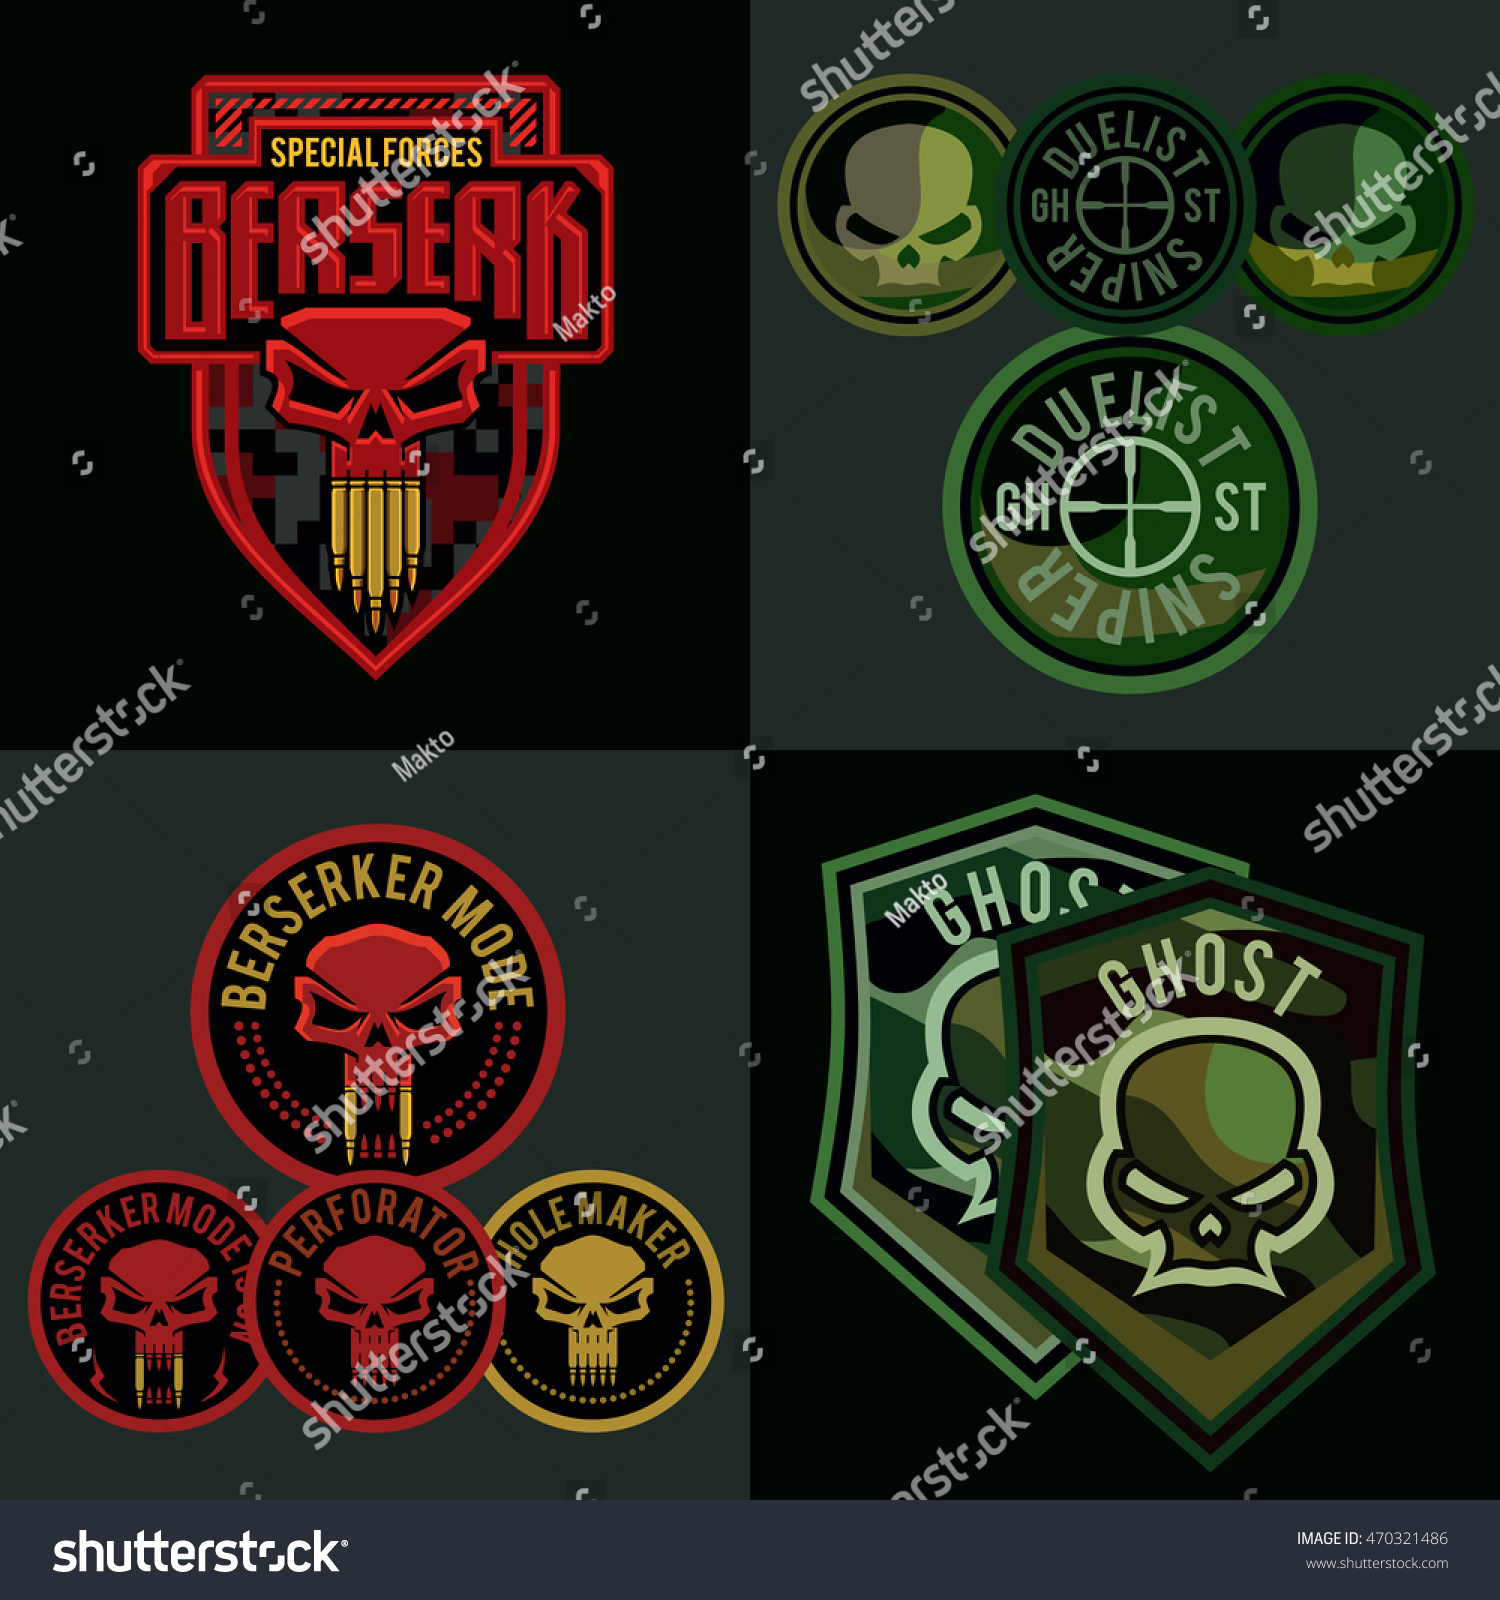 military patch template - special forces military patch set skull stock vector